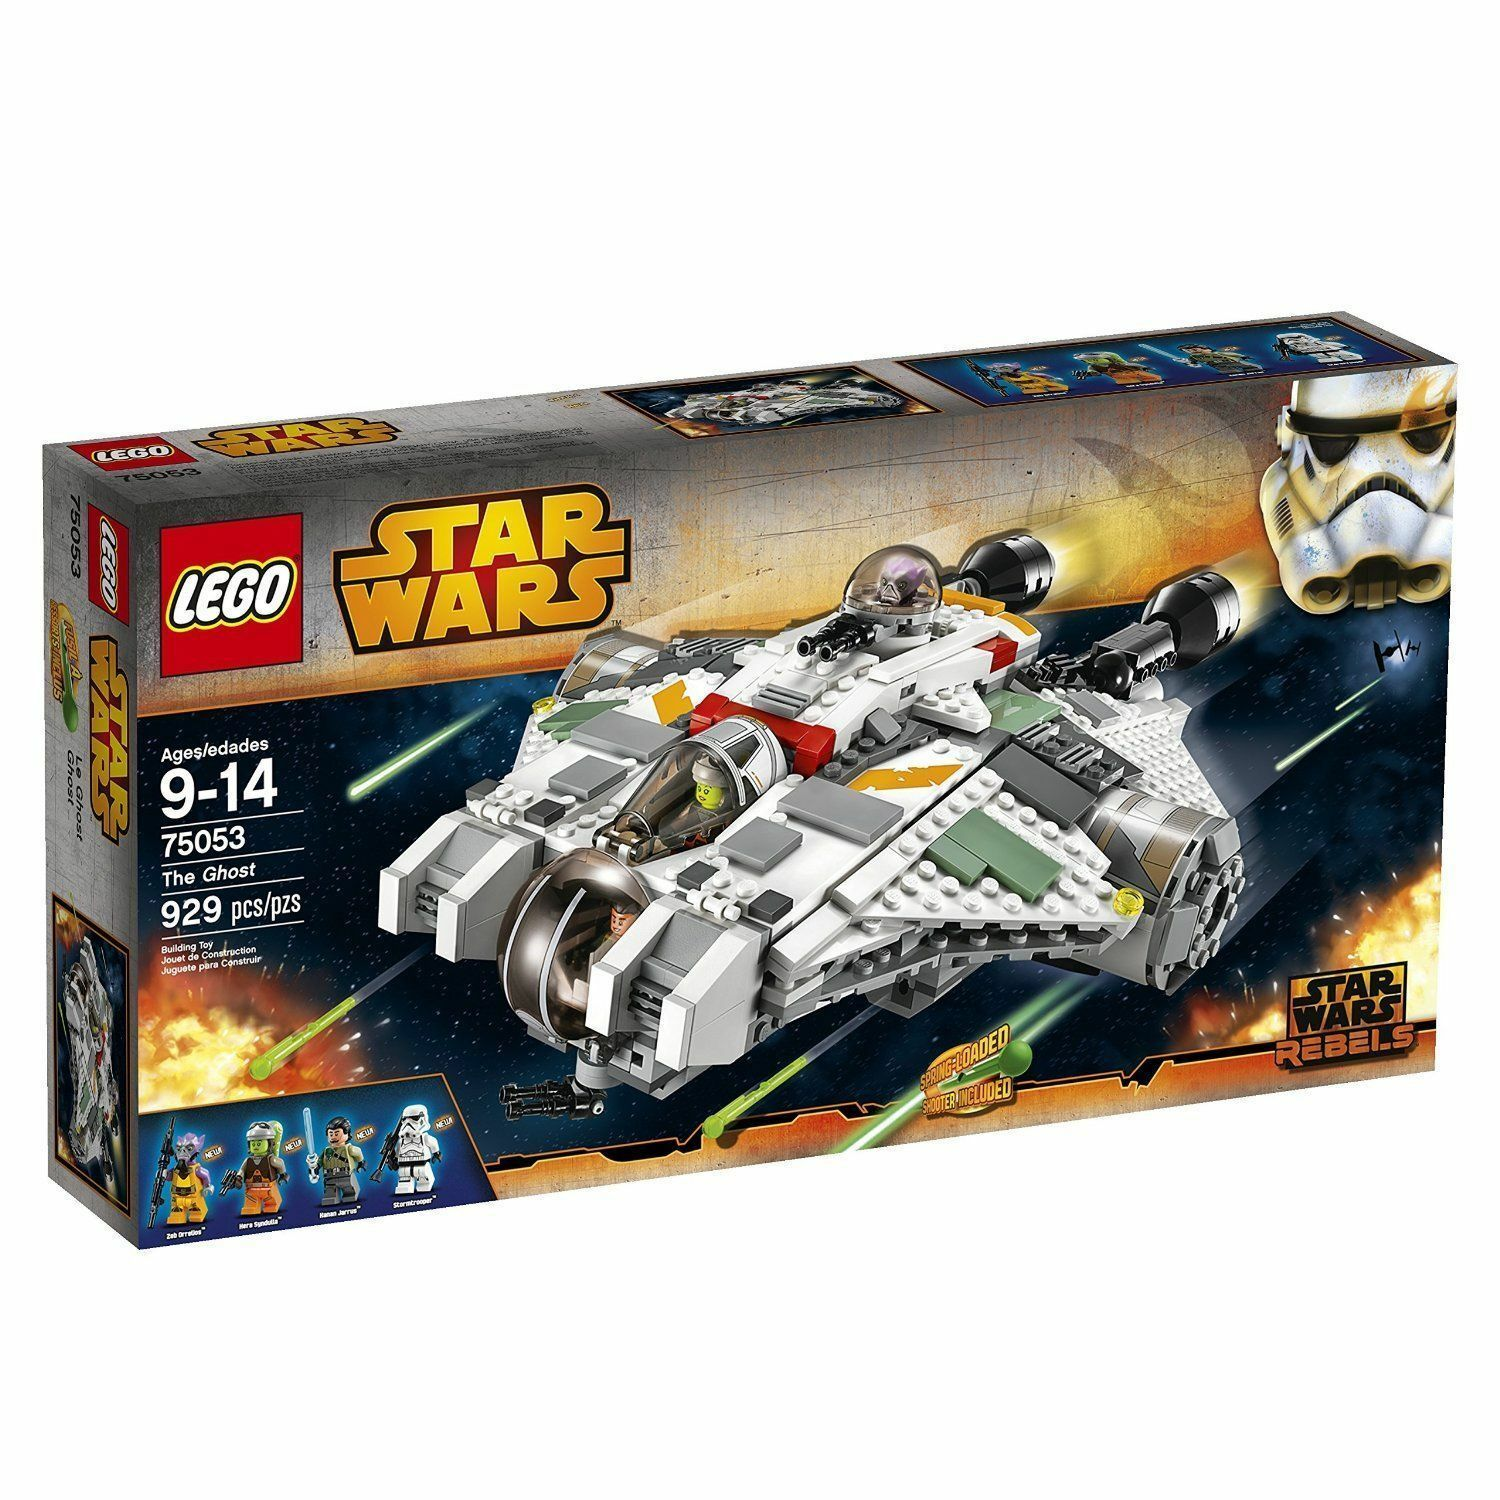 LEGO Star Wars 75053 The Ghost Building Toy New Sealed